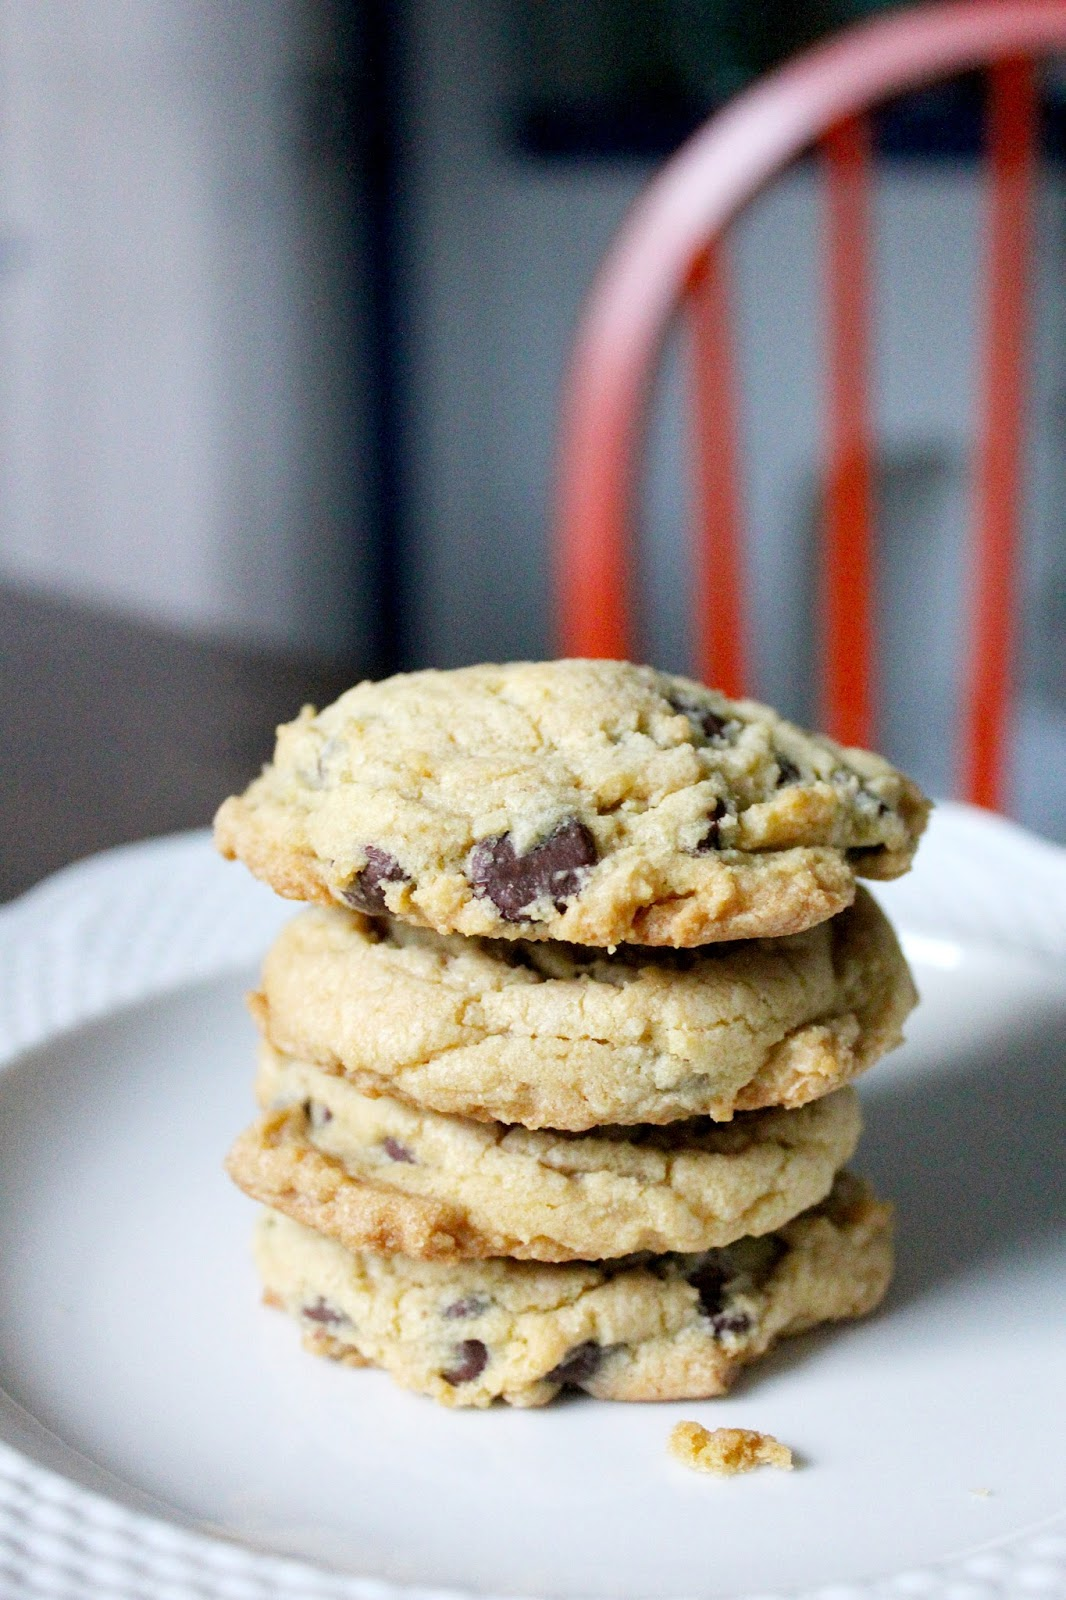 Recipe for Vanilla Pudding Mix Chocolate Chip Cookies by freshfromthe.com